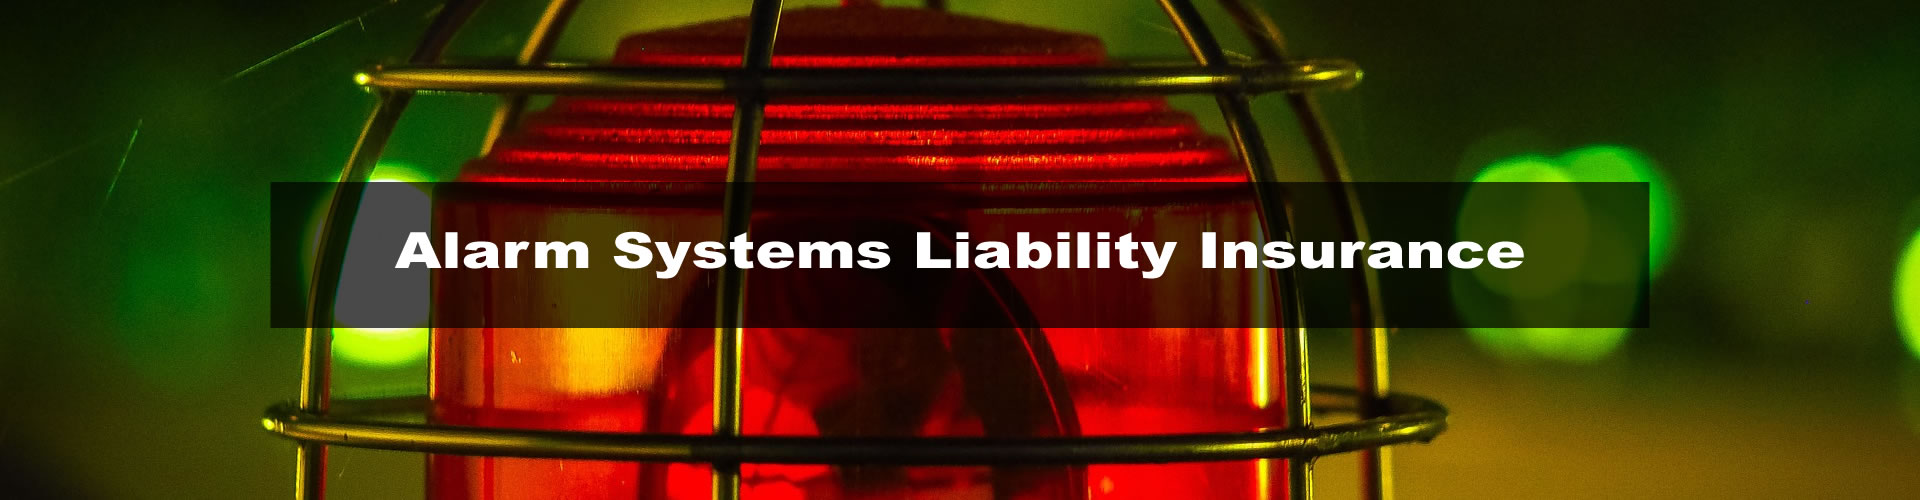 Alarm Systems Liability Insurance